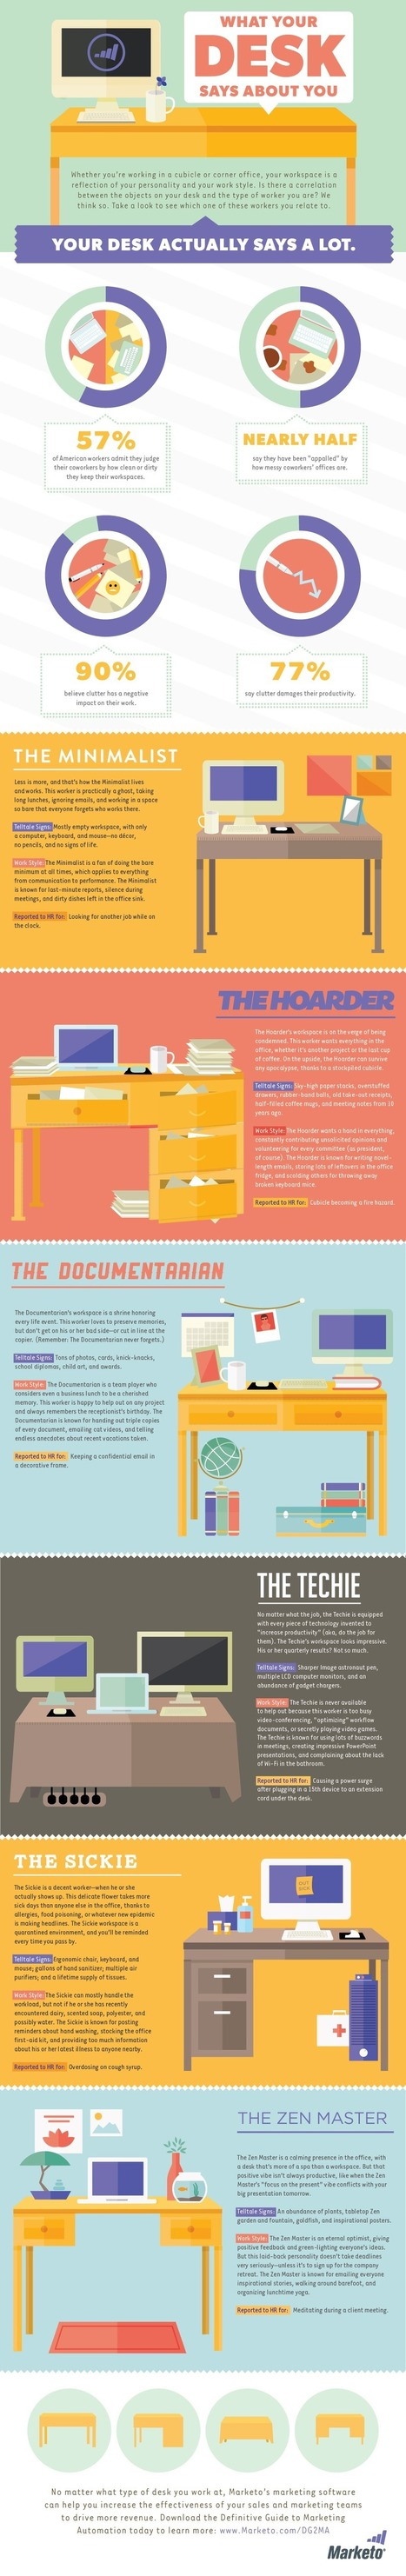 What Your Desk Says About You [INFOGRAPHIC] | Designing  service | Scoop.it